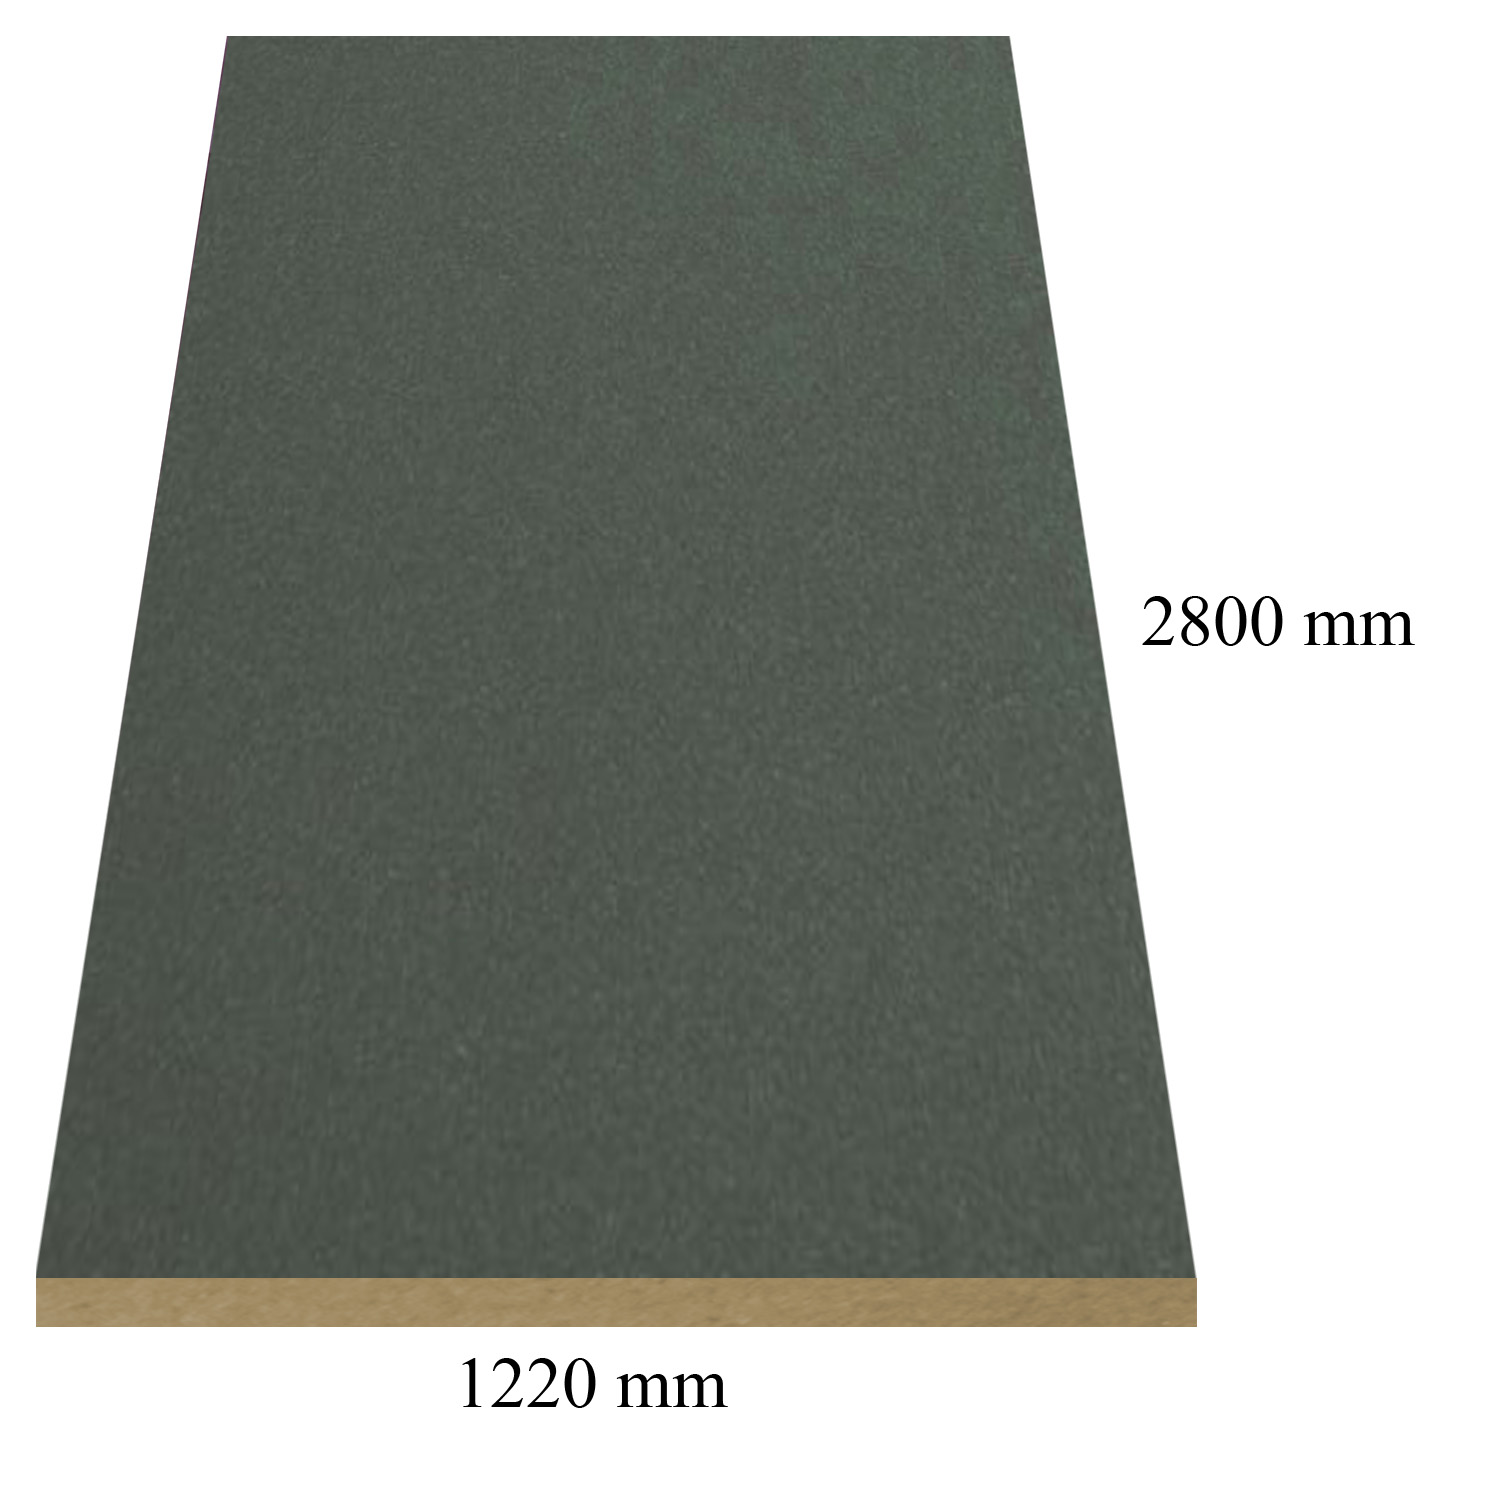 1431 /476 Antracite galaxy high gloss - PVC coated 18 mm MDF